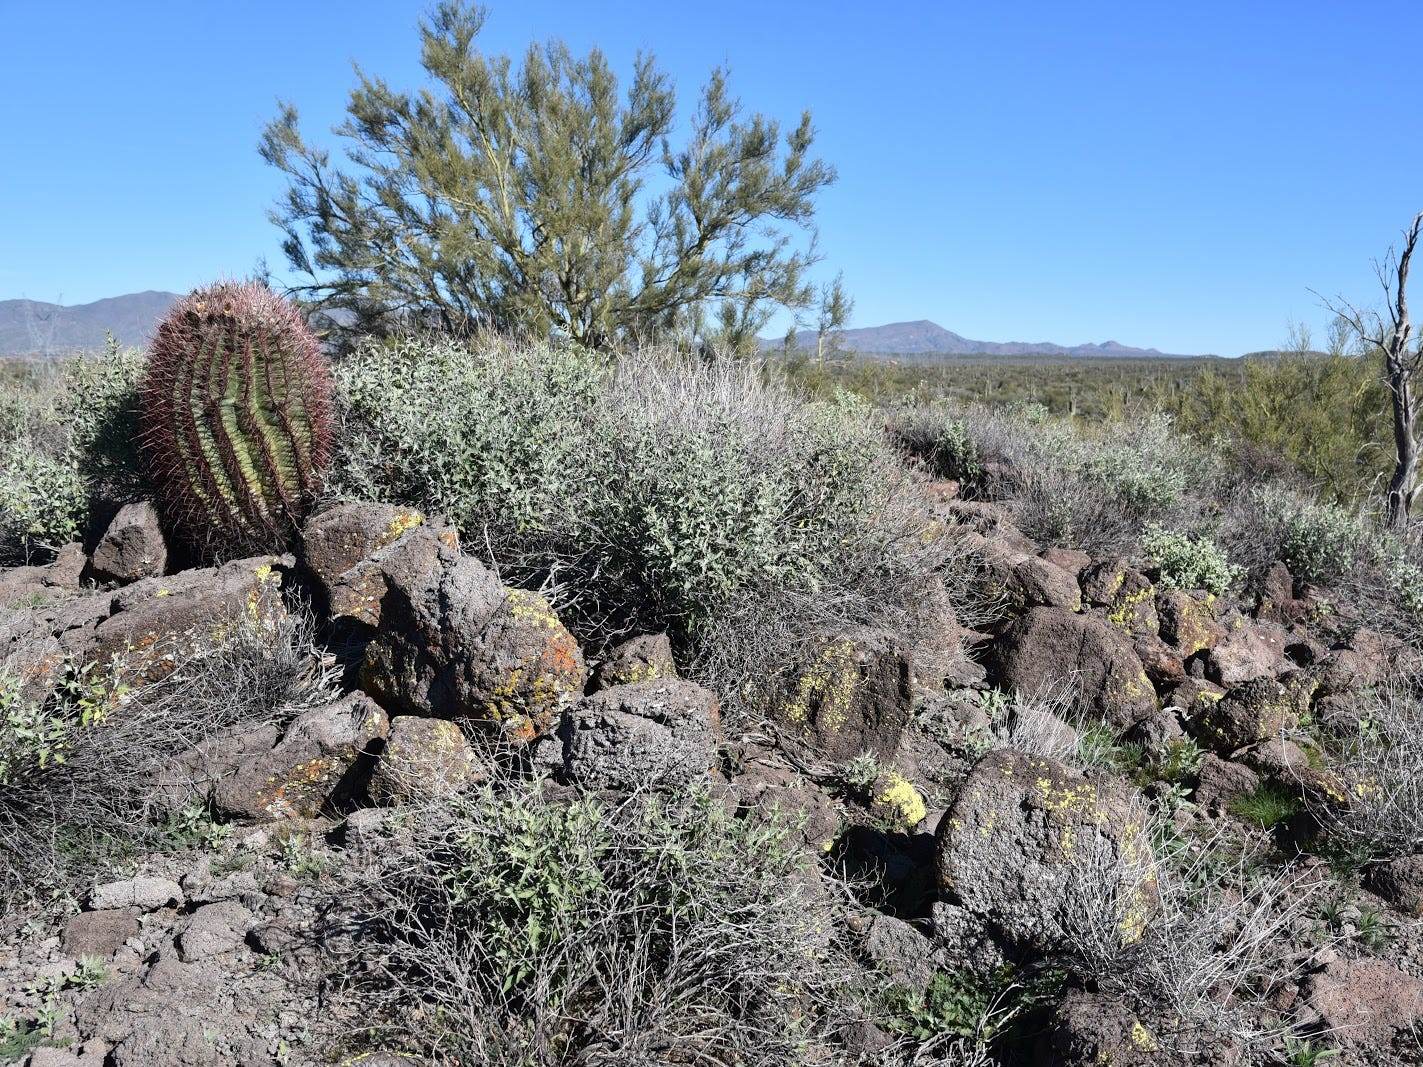 Chunks of lichen-encrusted basalt litter the Basalt Ridge Trail in Scottsdale's McDowell Sonoran Preserve.